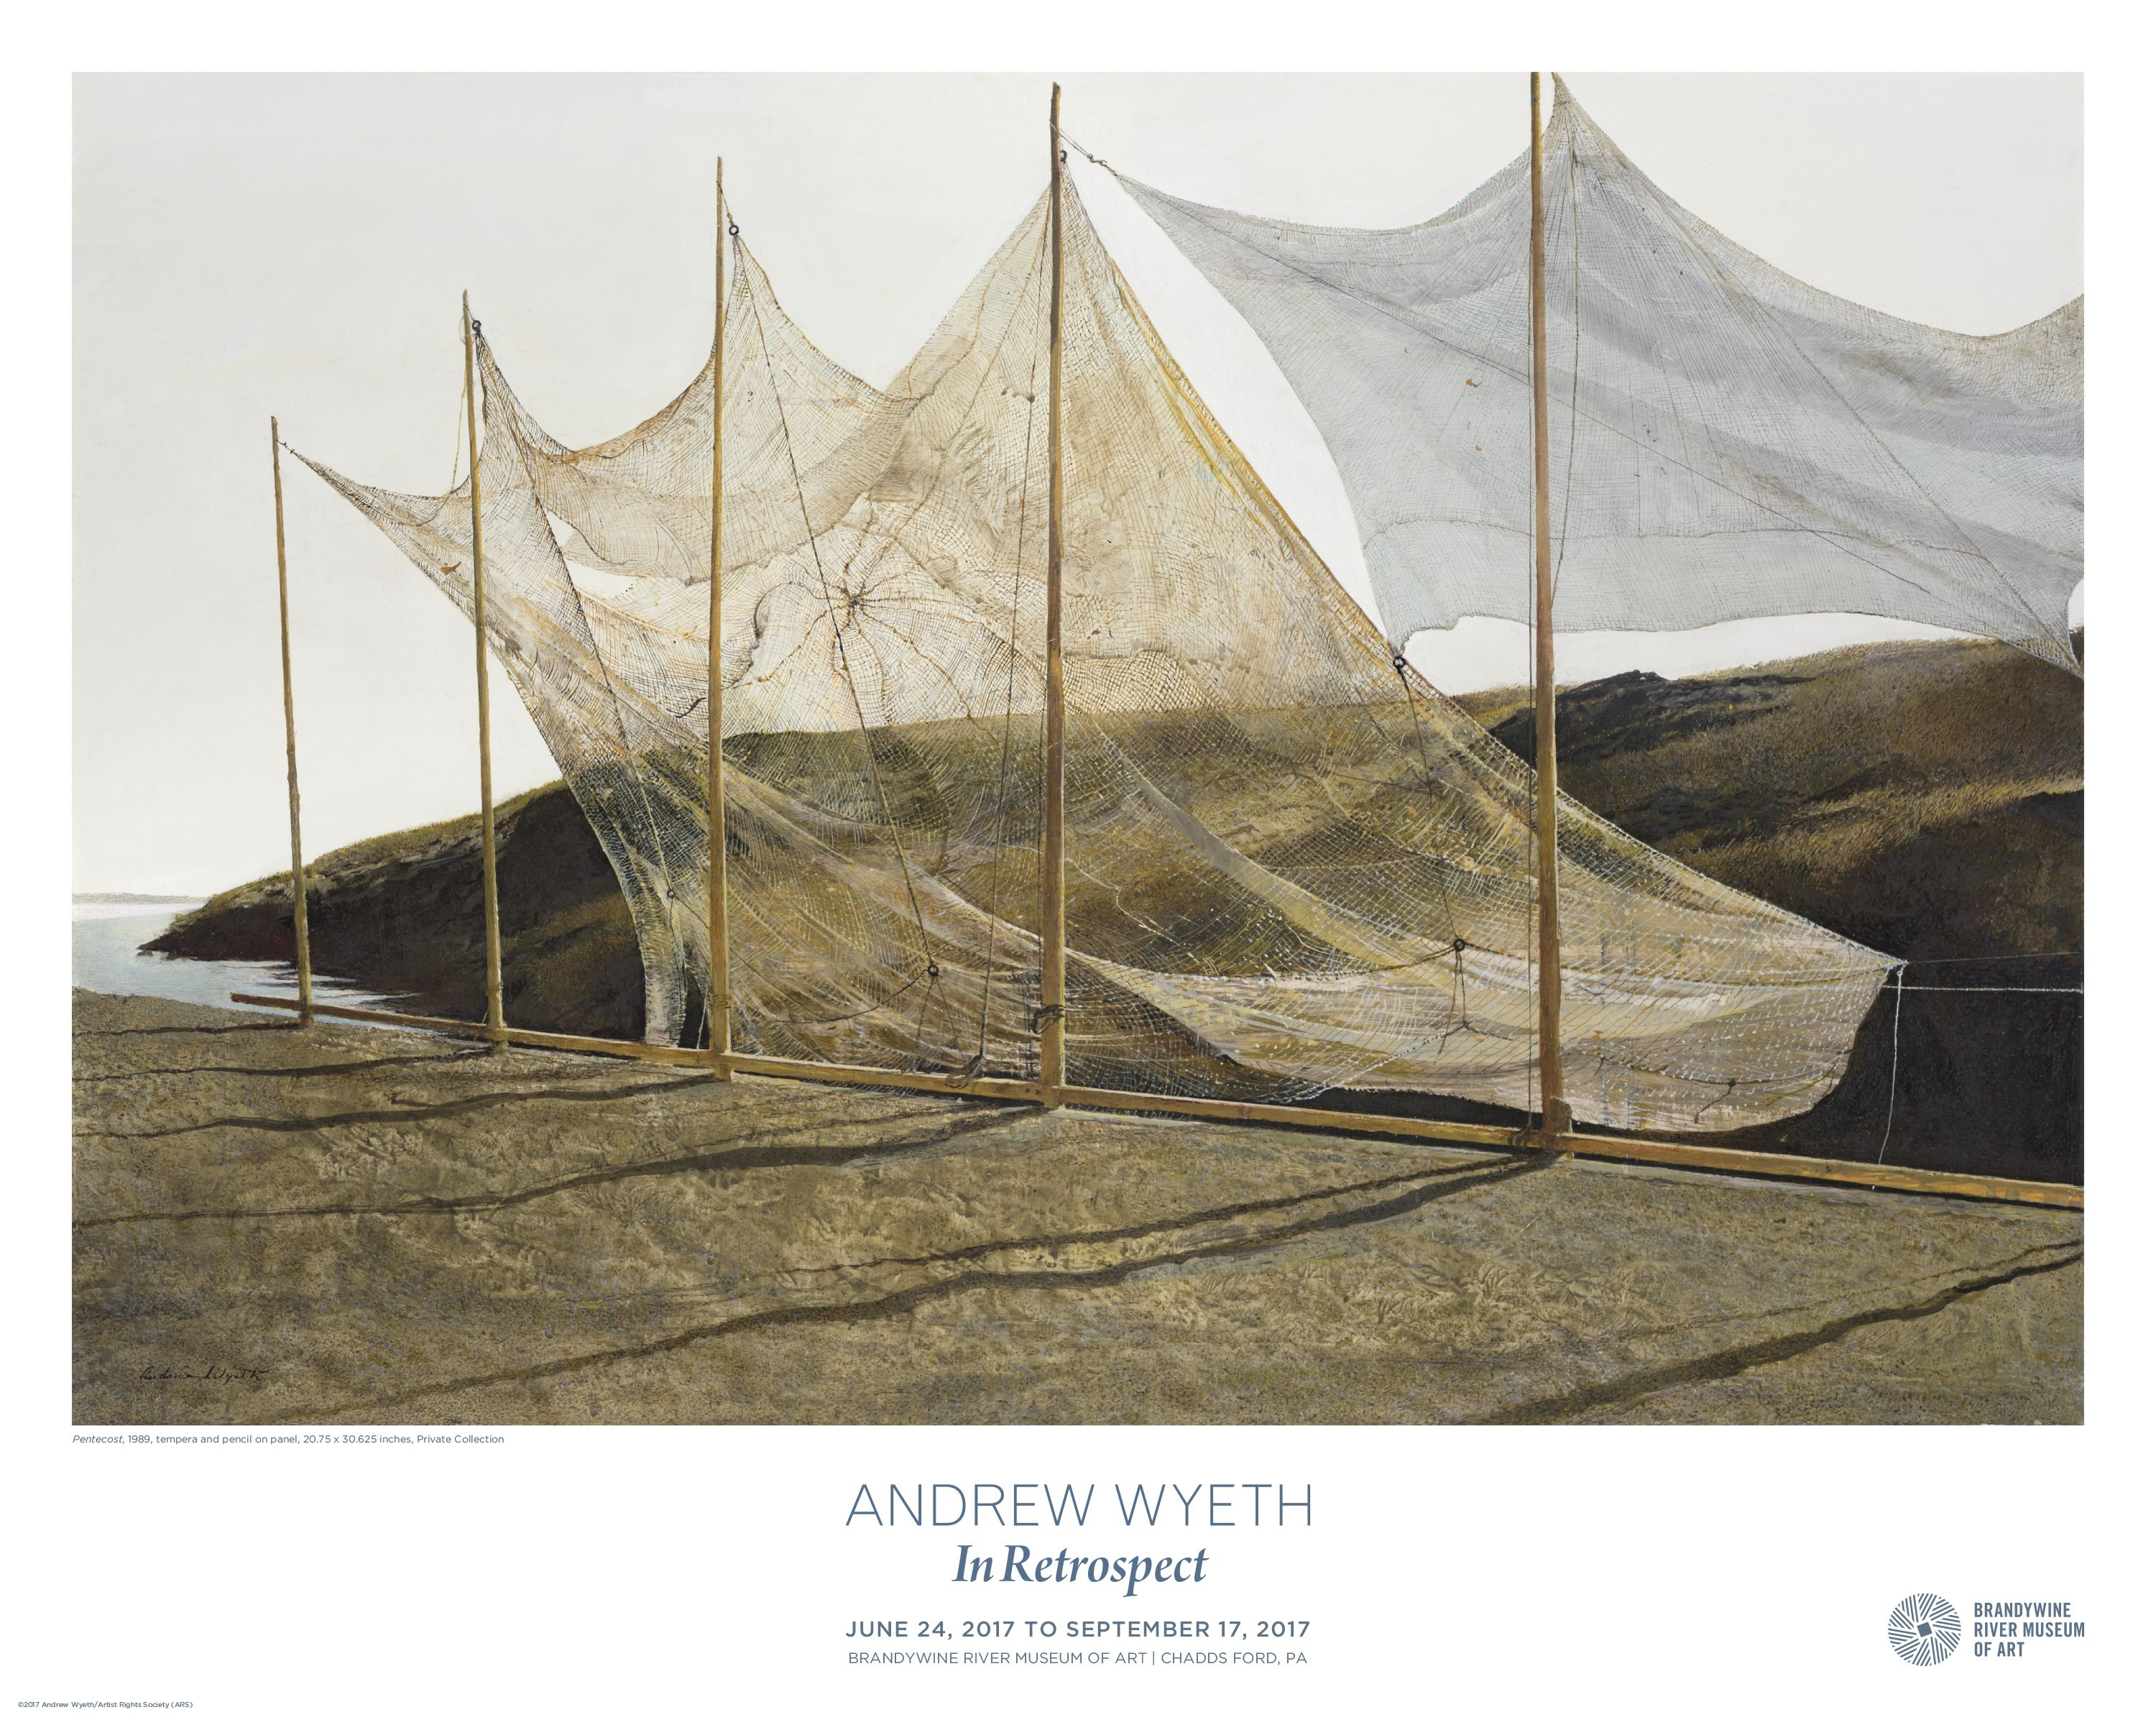 Commemorative Andrew Wyeth Poster For Brandywine River Museum Of